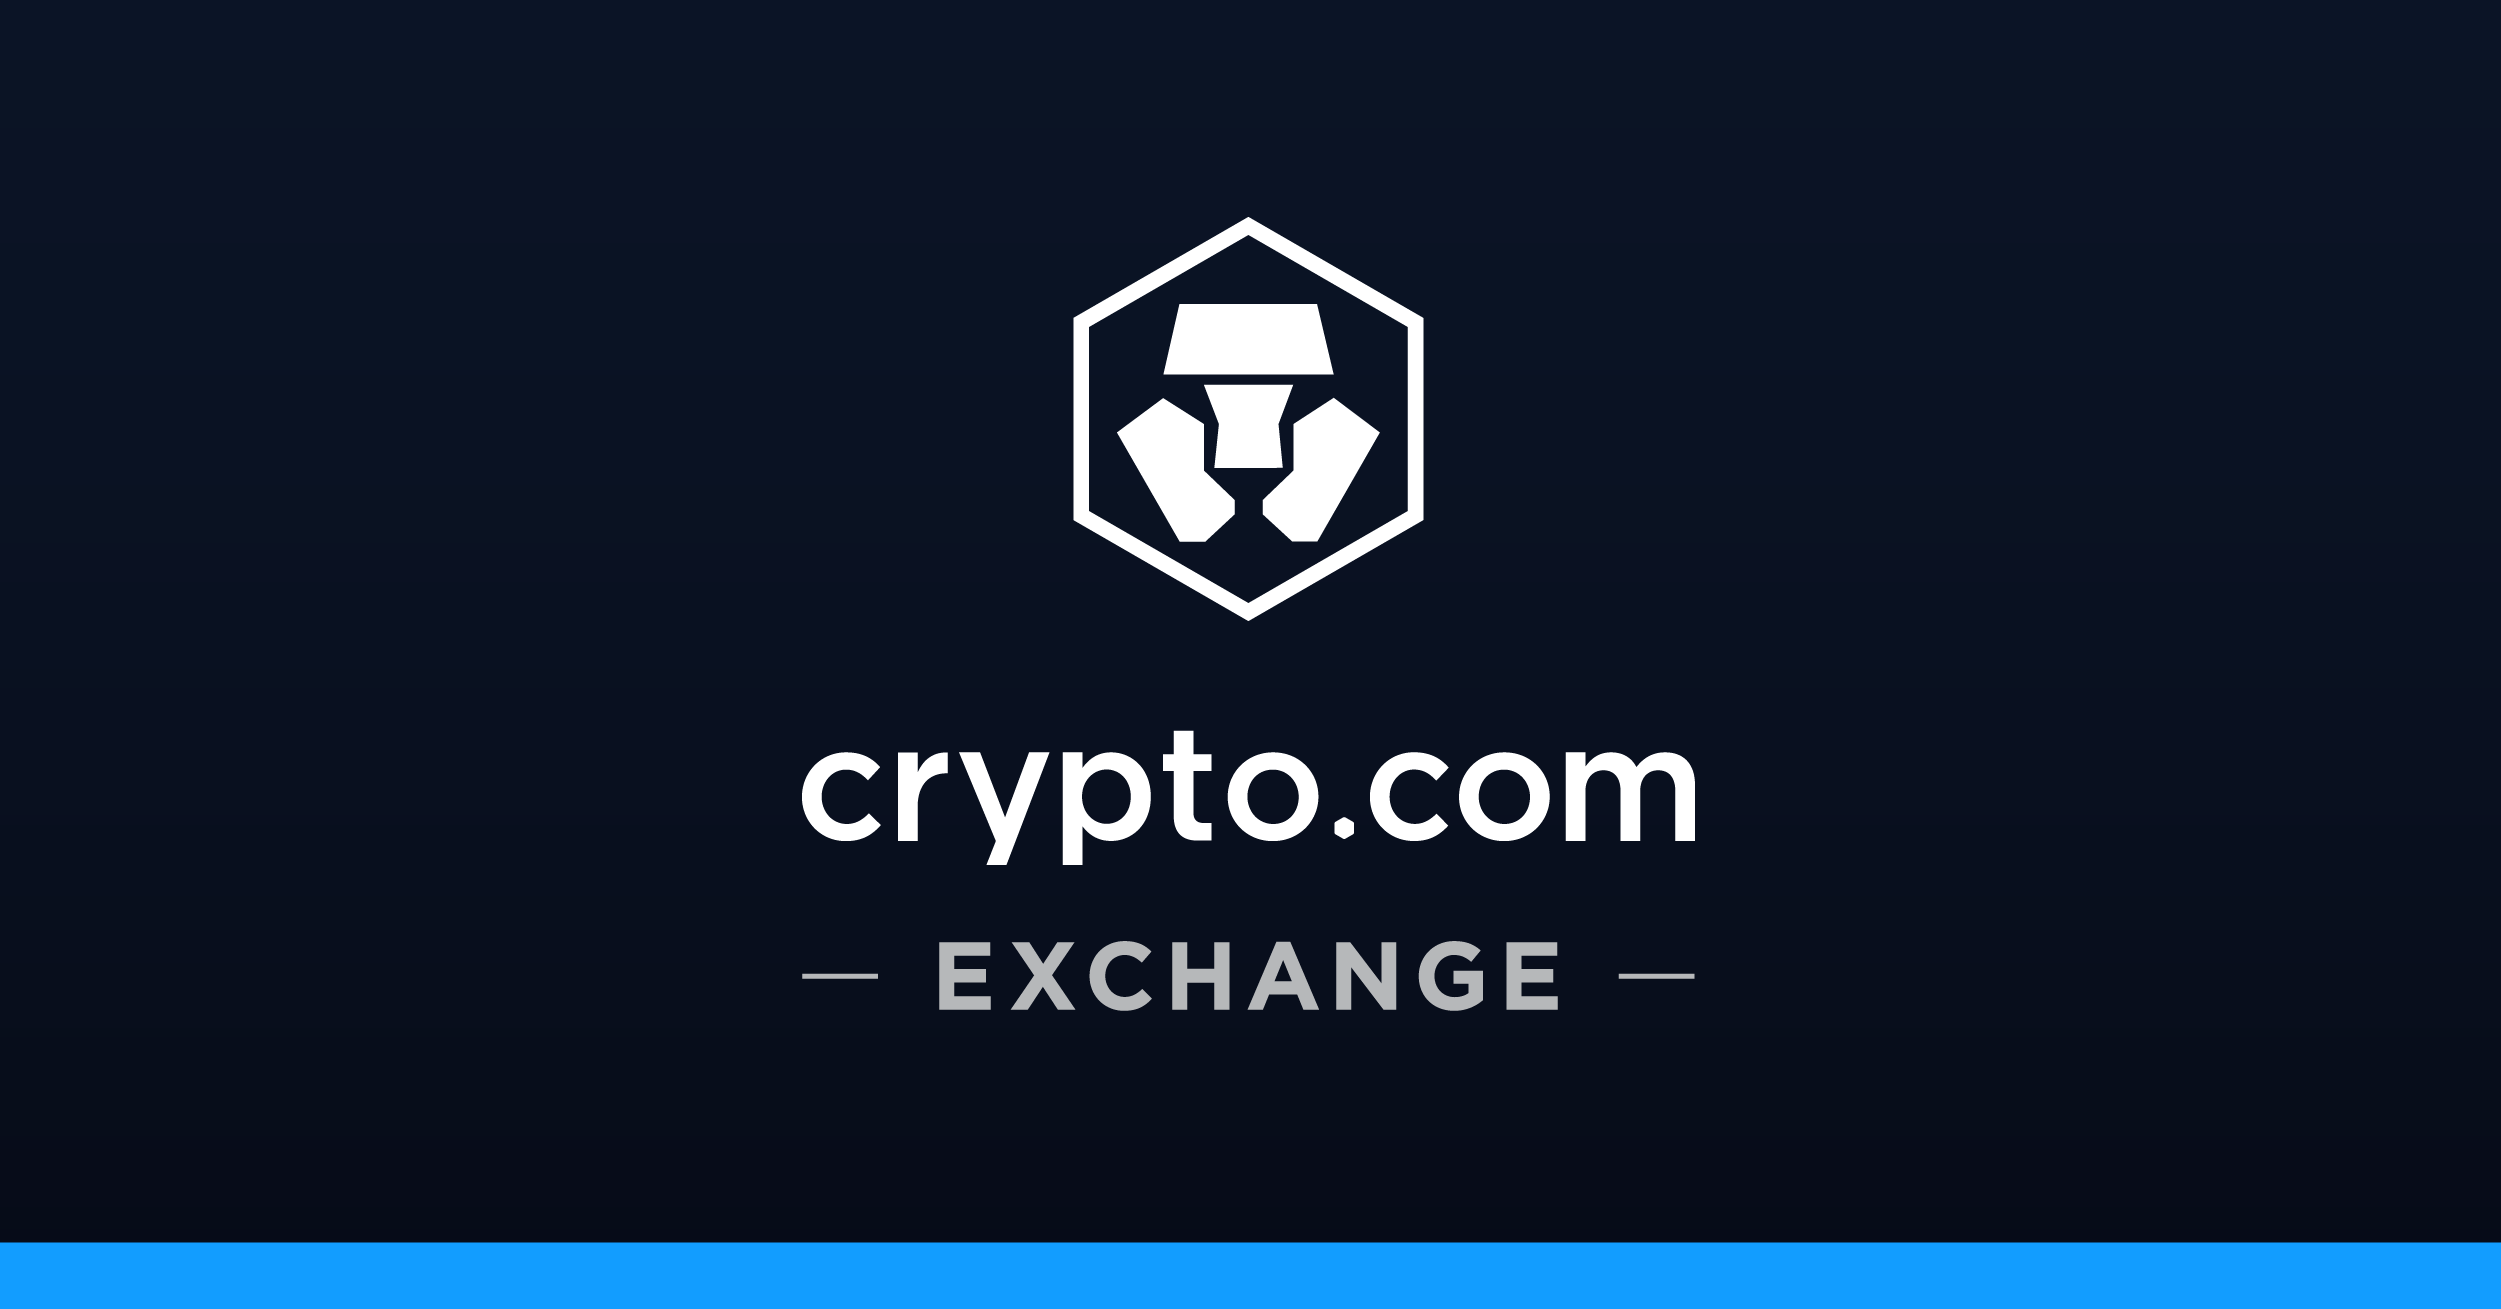 Best Fiat to Crypto Exchanges